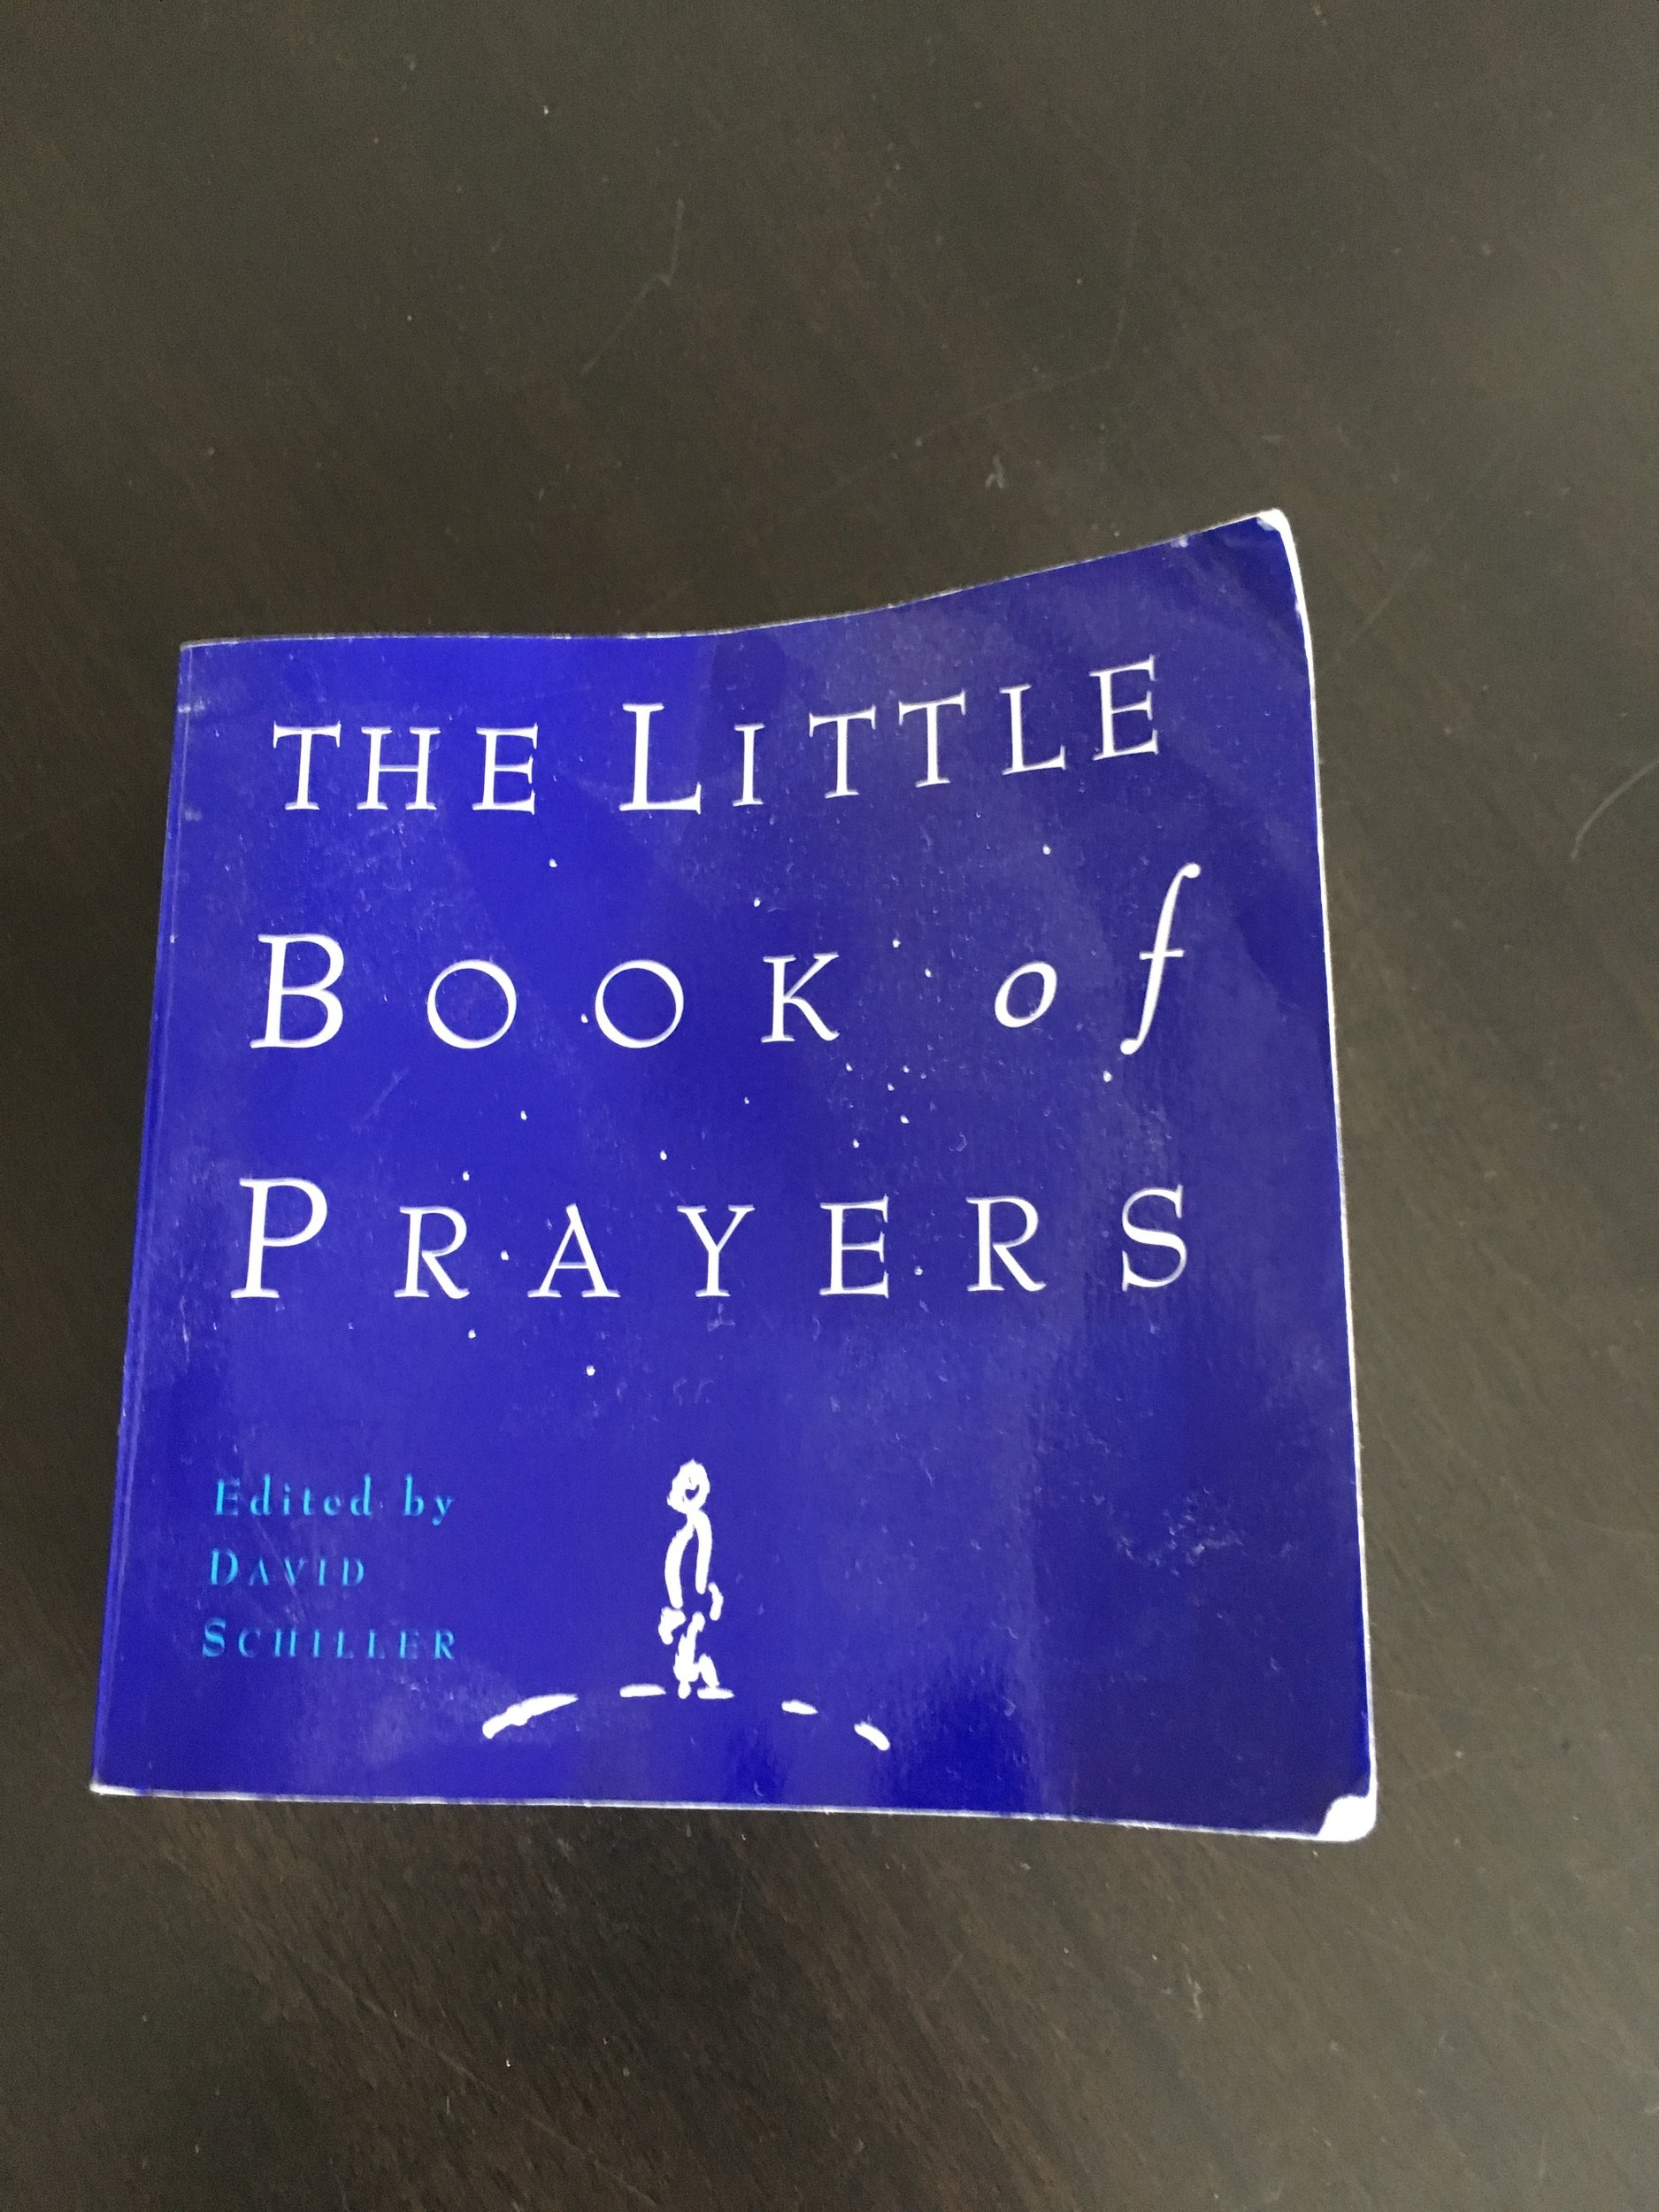 A co-worker, Mary Brown, gave this to me right after my dad passed away. I was touched by the  thoughtful pinch  but it hurt too much to read it back then. Fifteen years later, I'm finally able to read it.